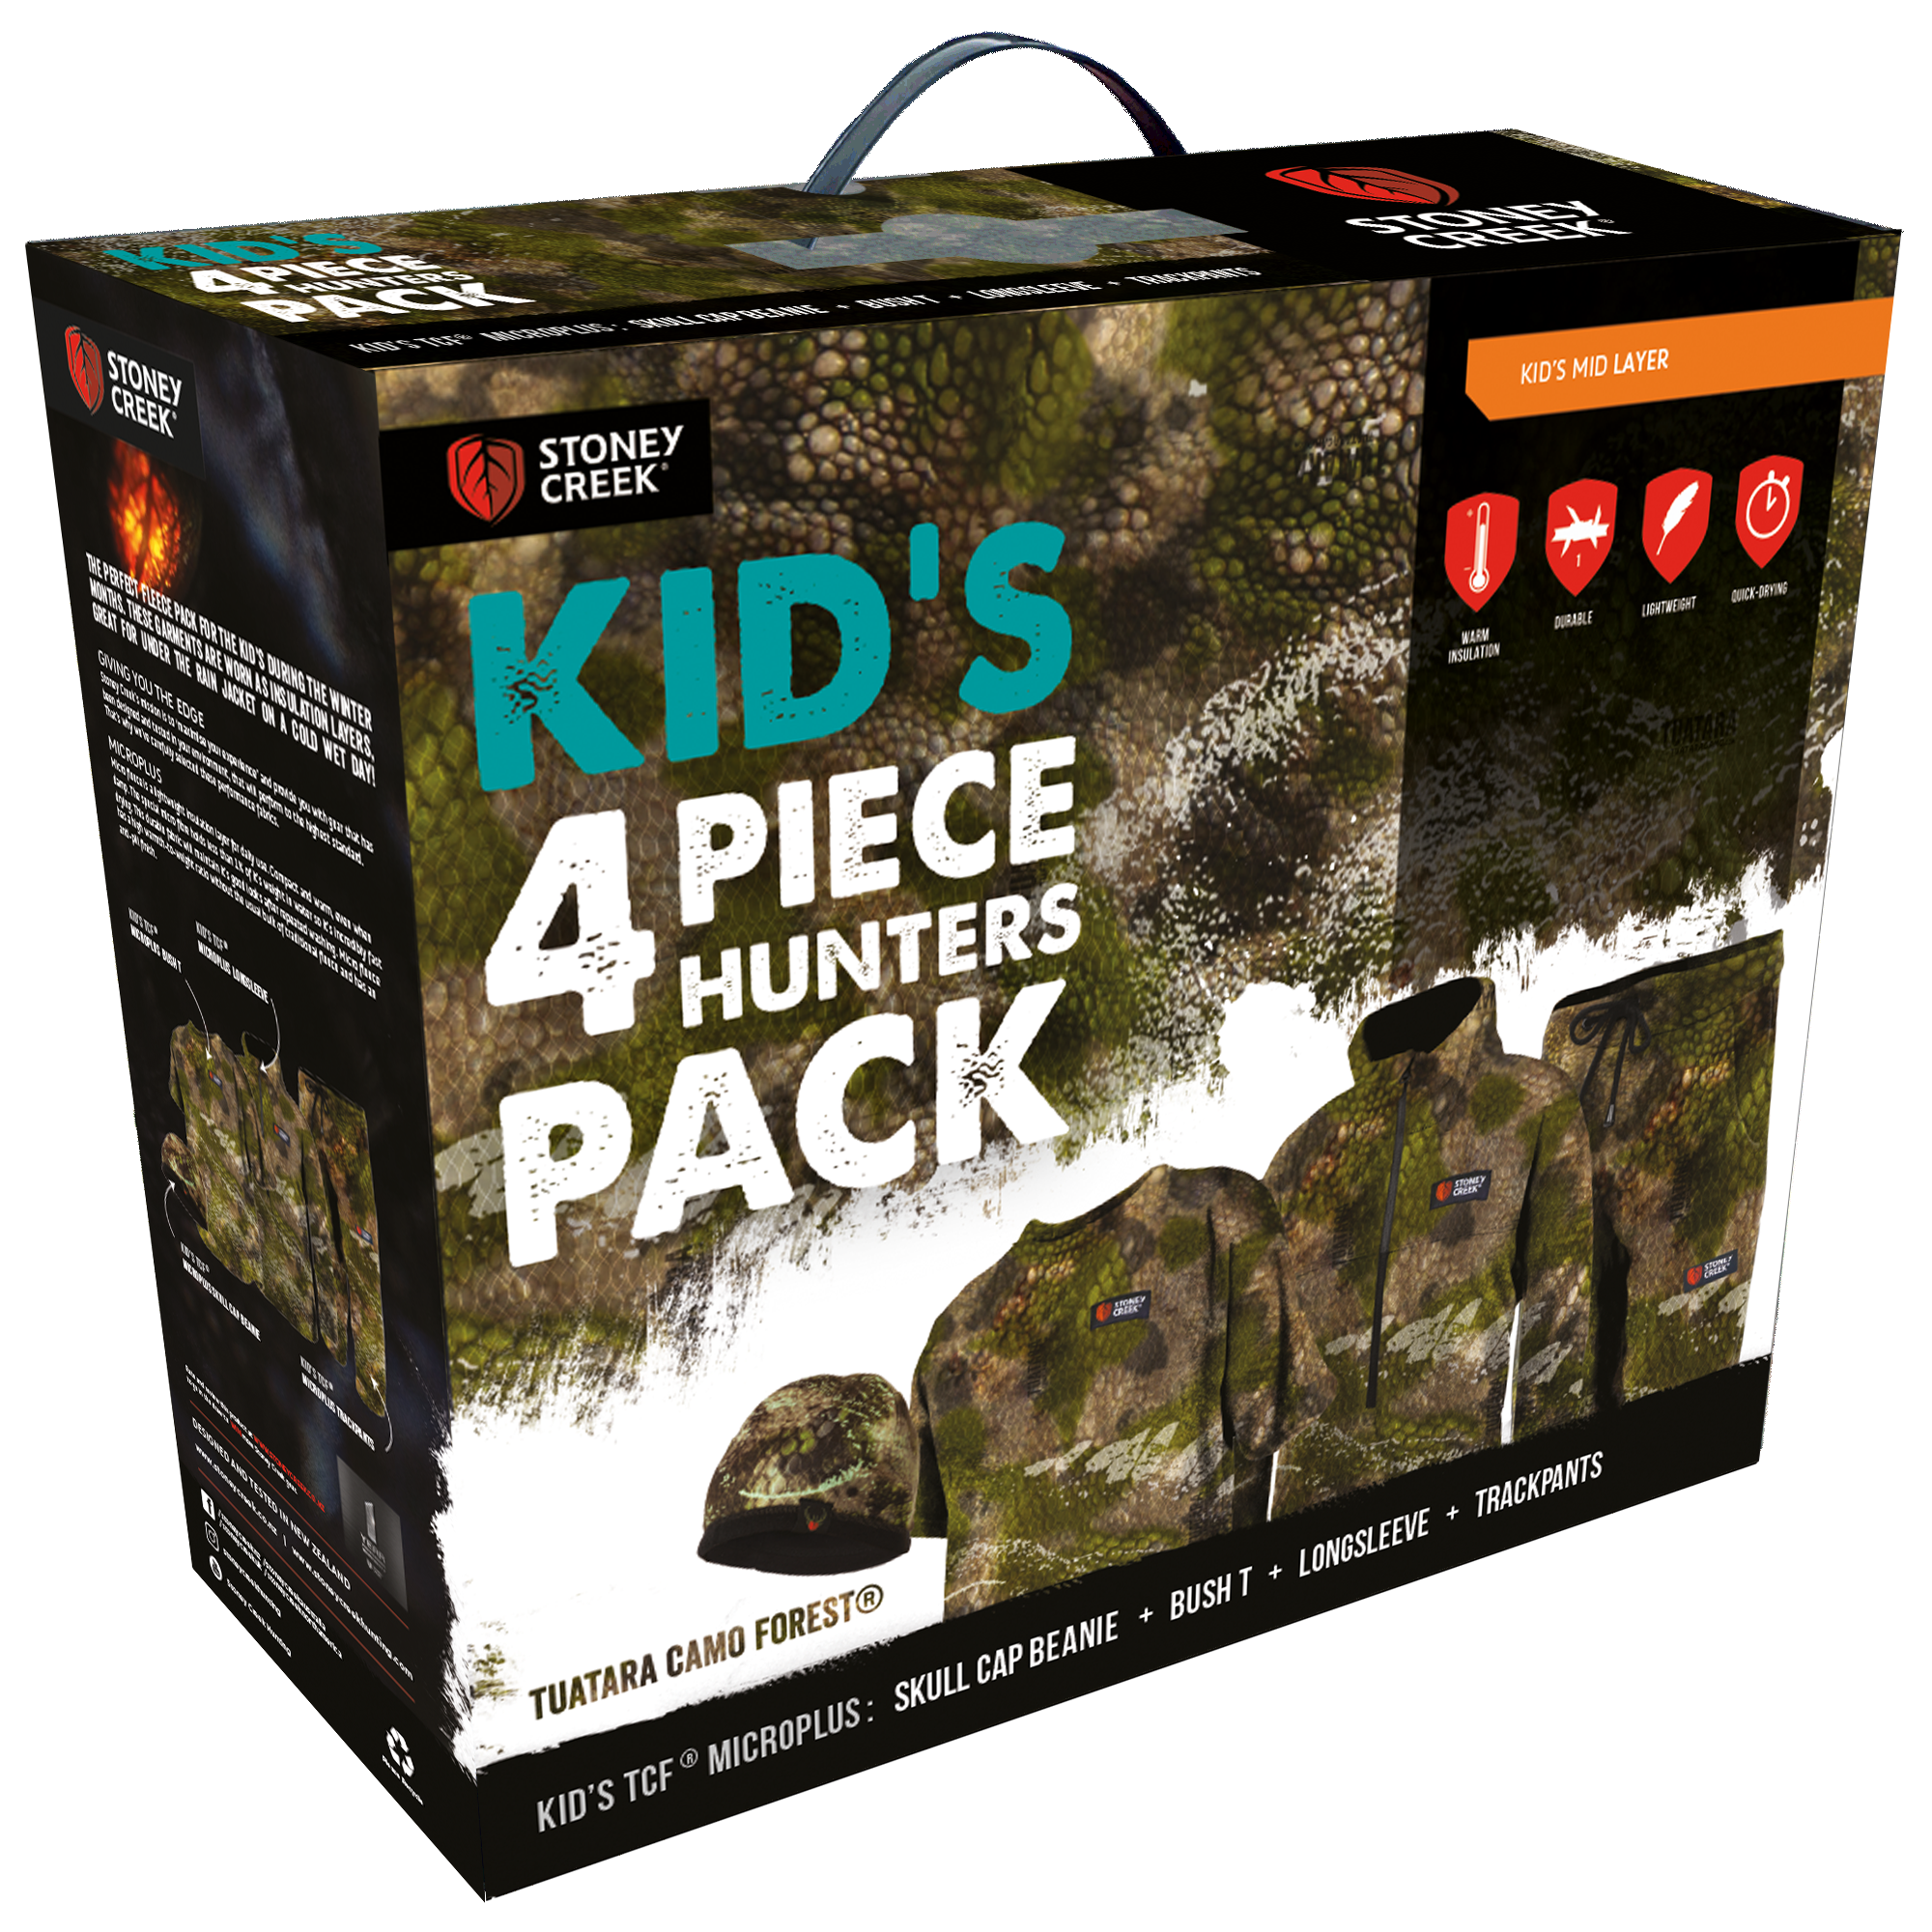 Kid's 4 Piece Hunters Pack